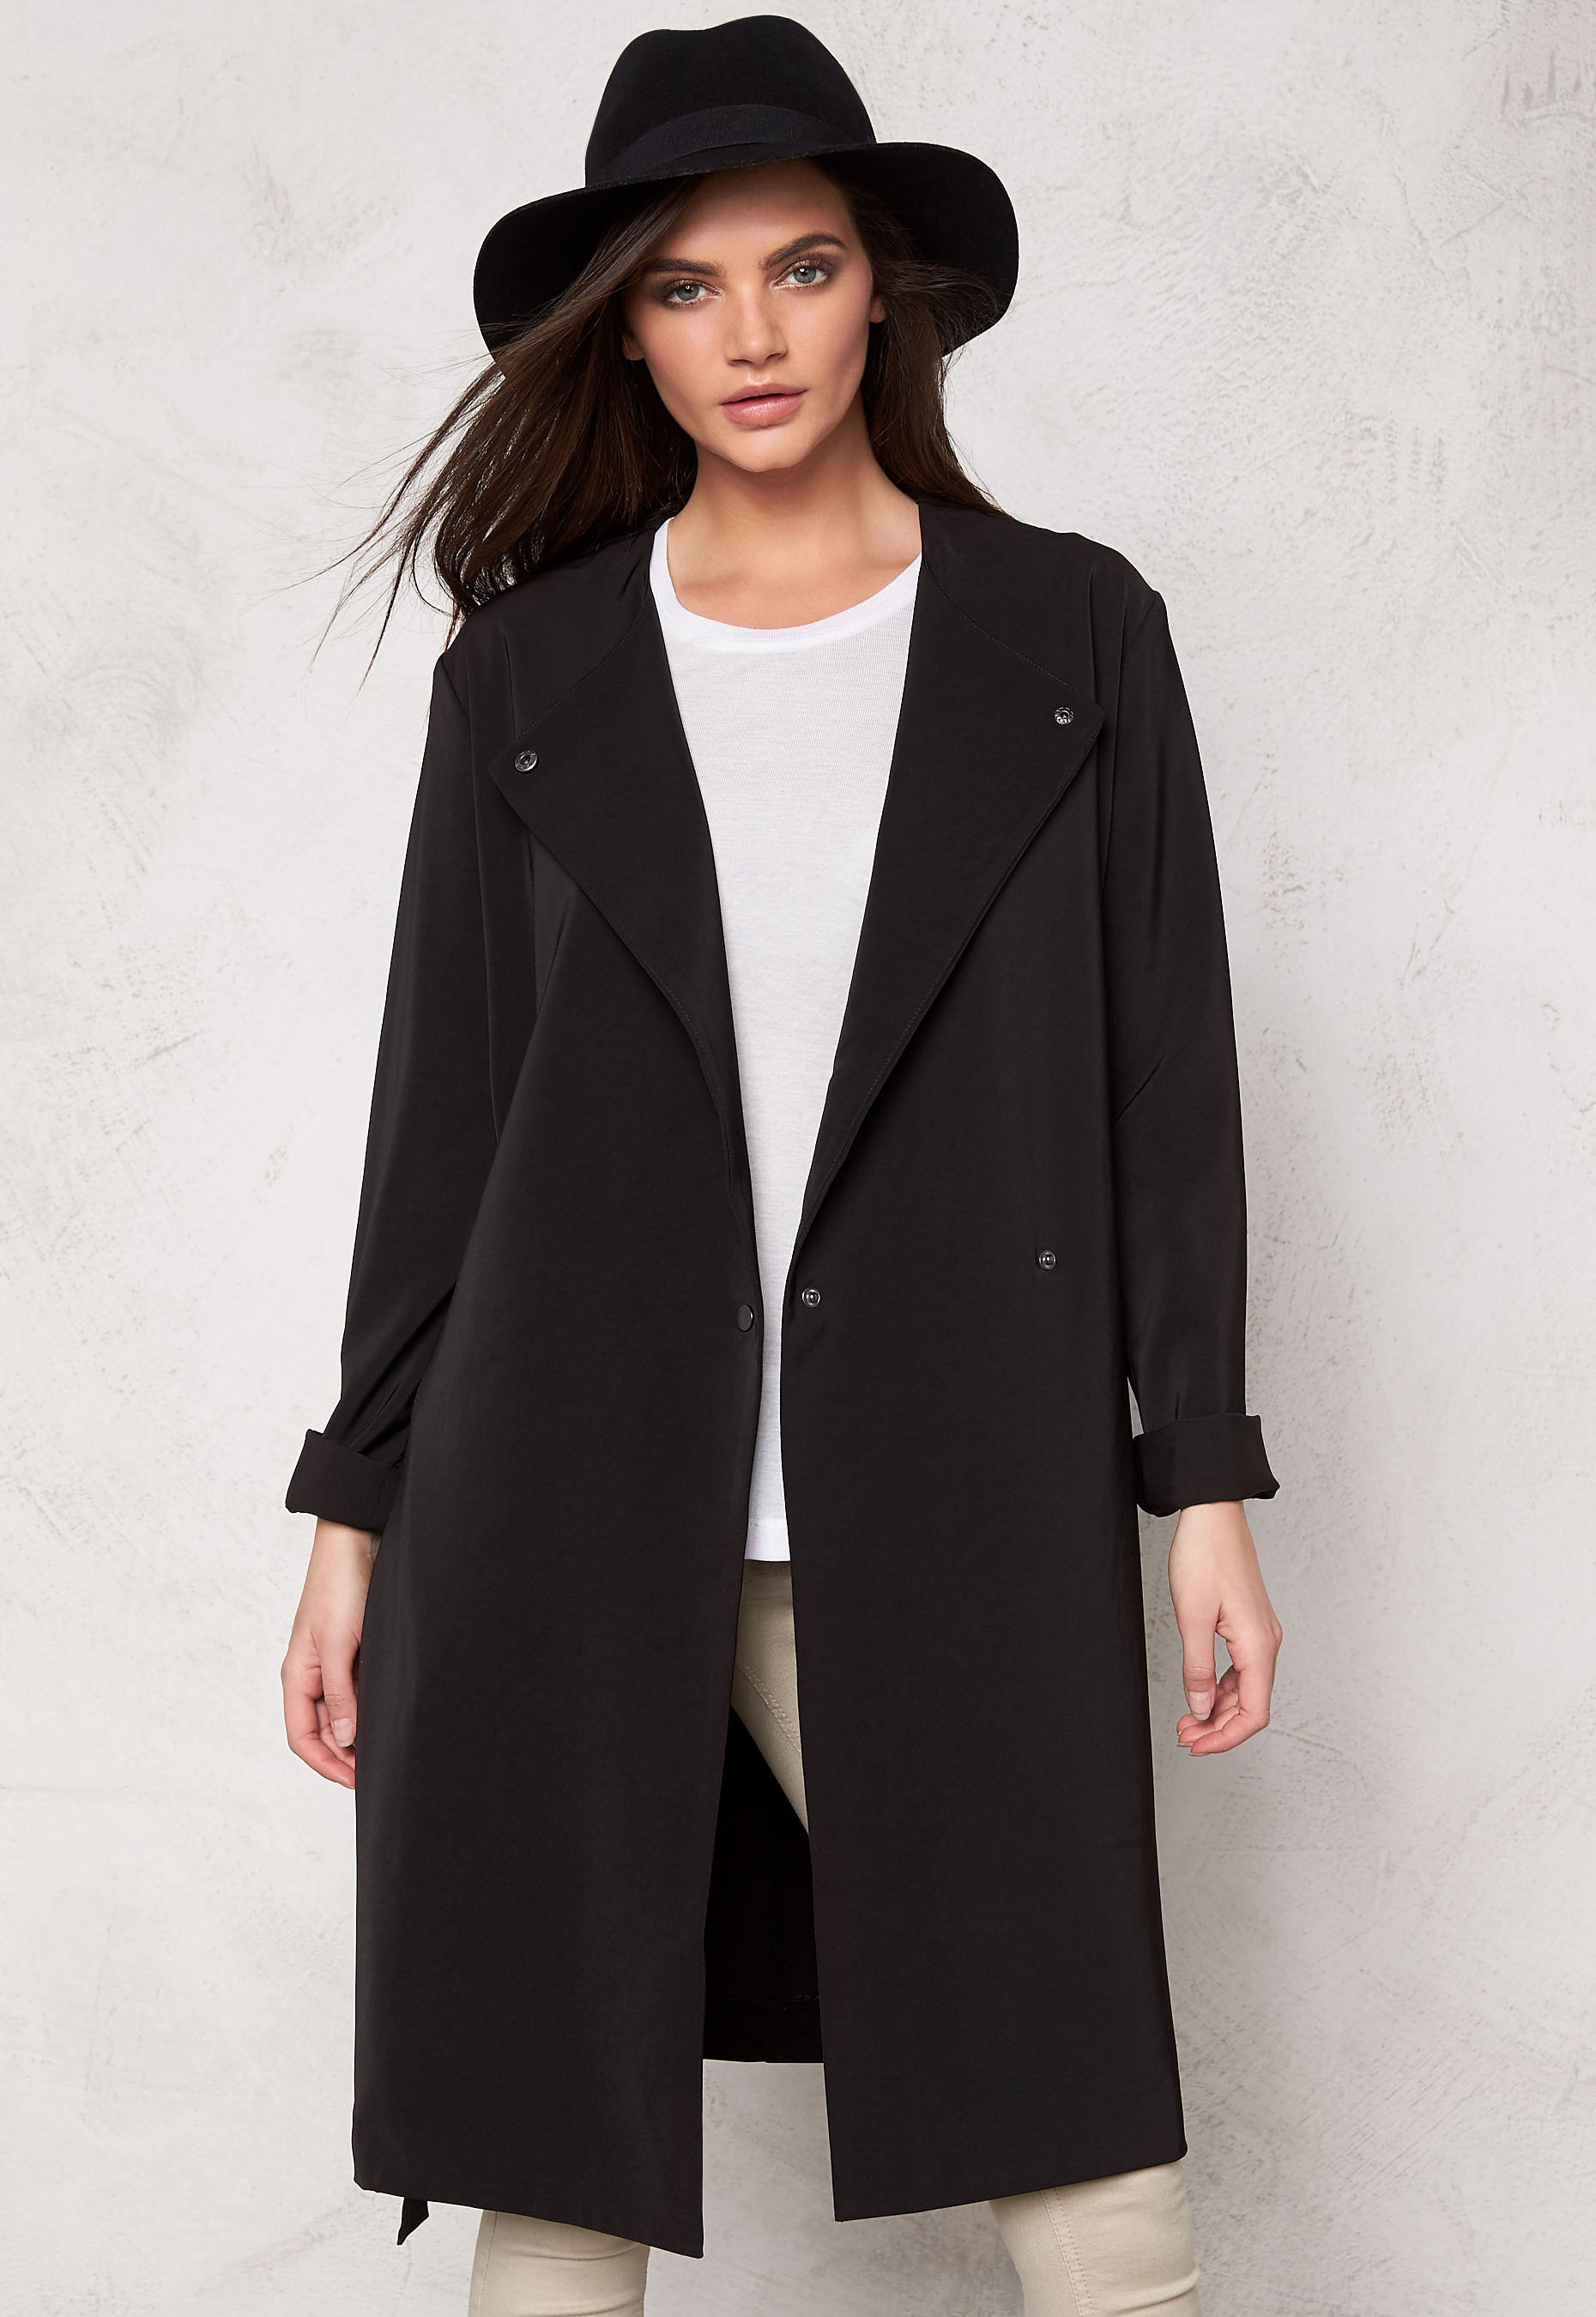 be7addf7 Samsøe & Samsøe Ria Long Jacket Black - Bubbleroom